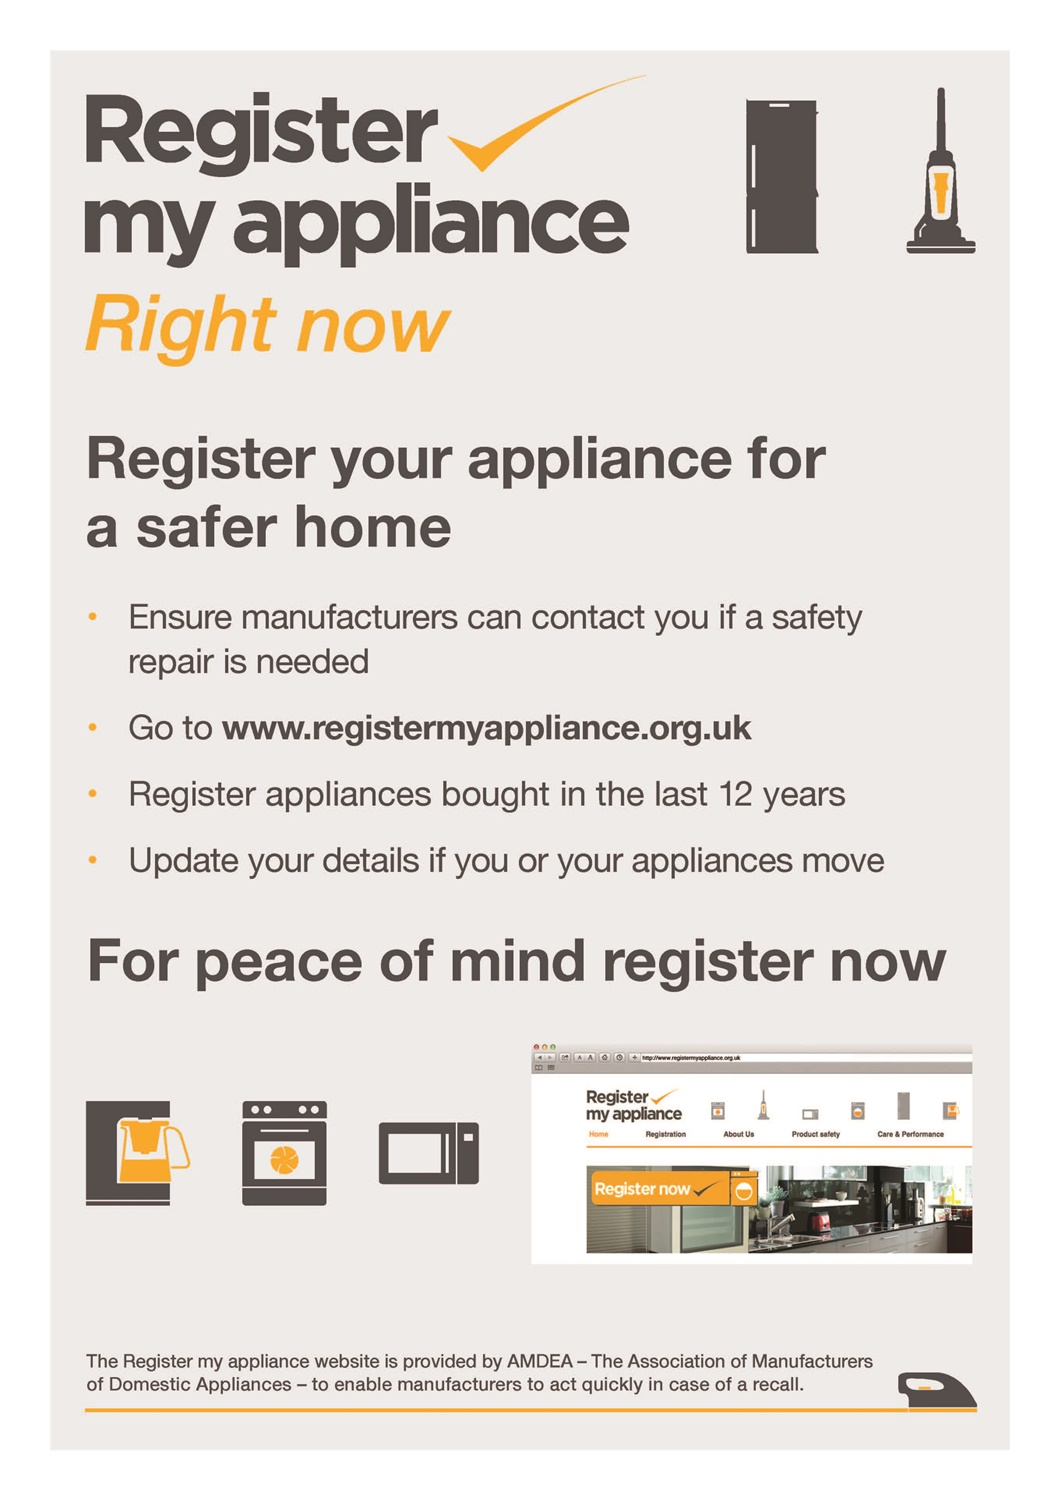 Register-my-appliance-Promo-Poster-A4